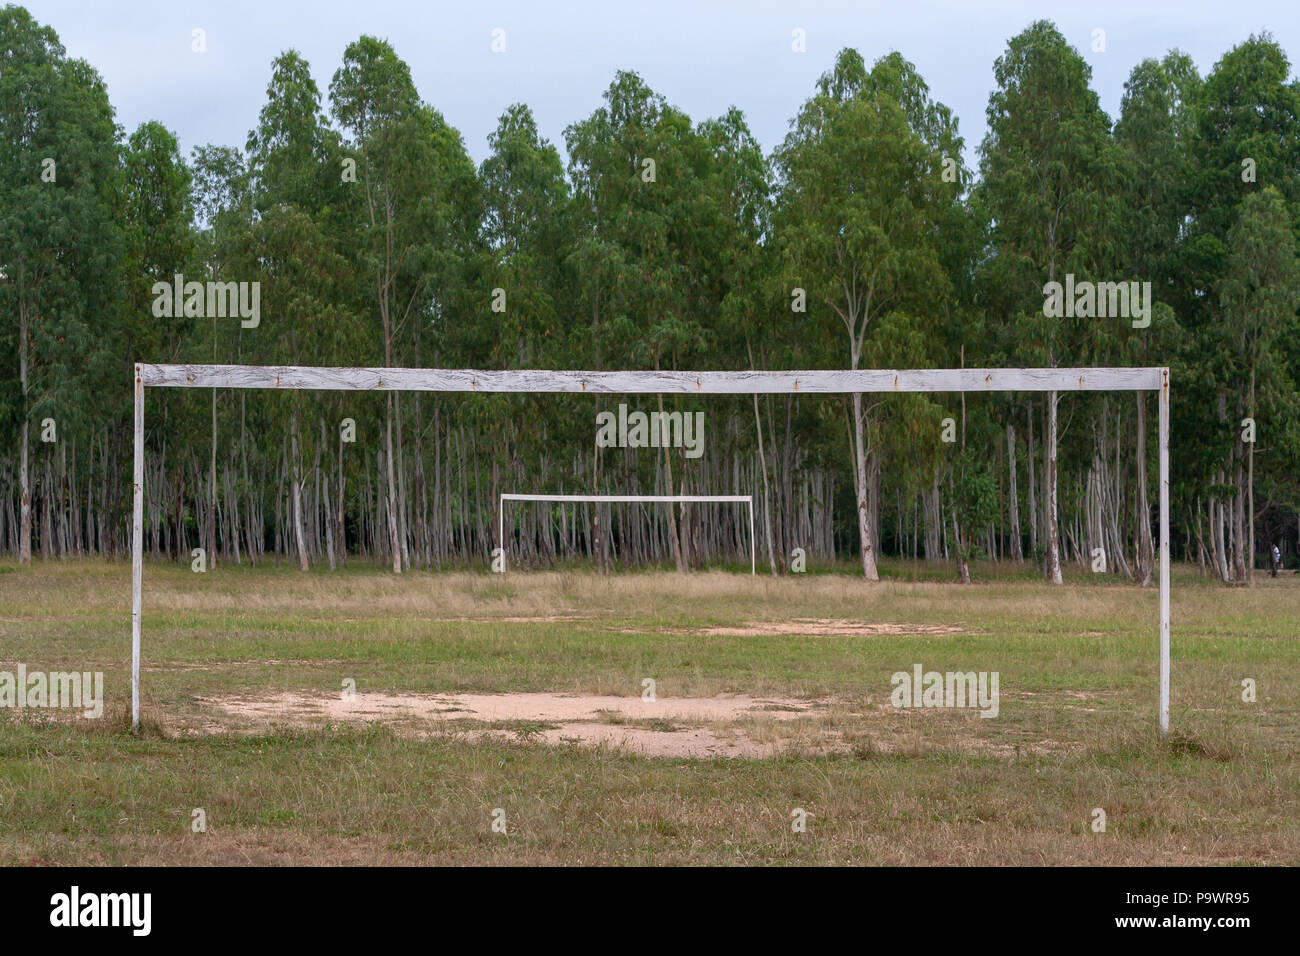 Two soccer goals, wooden frames without nets on green grass, front and middle ground, eucalyptus trees forest in background, Luque, Paraguay Stock Photo